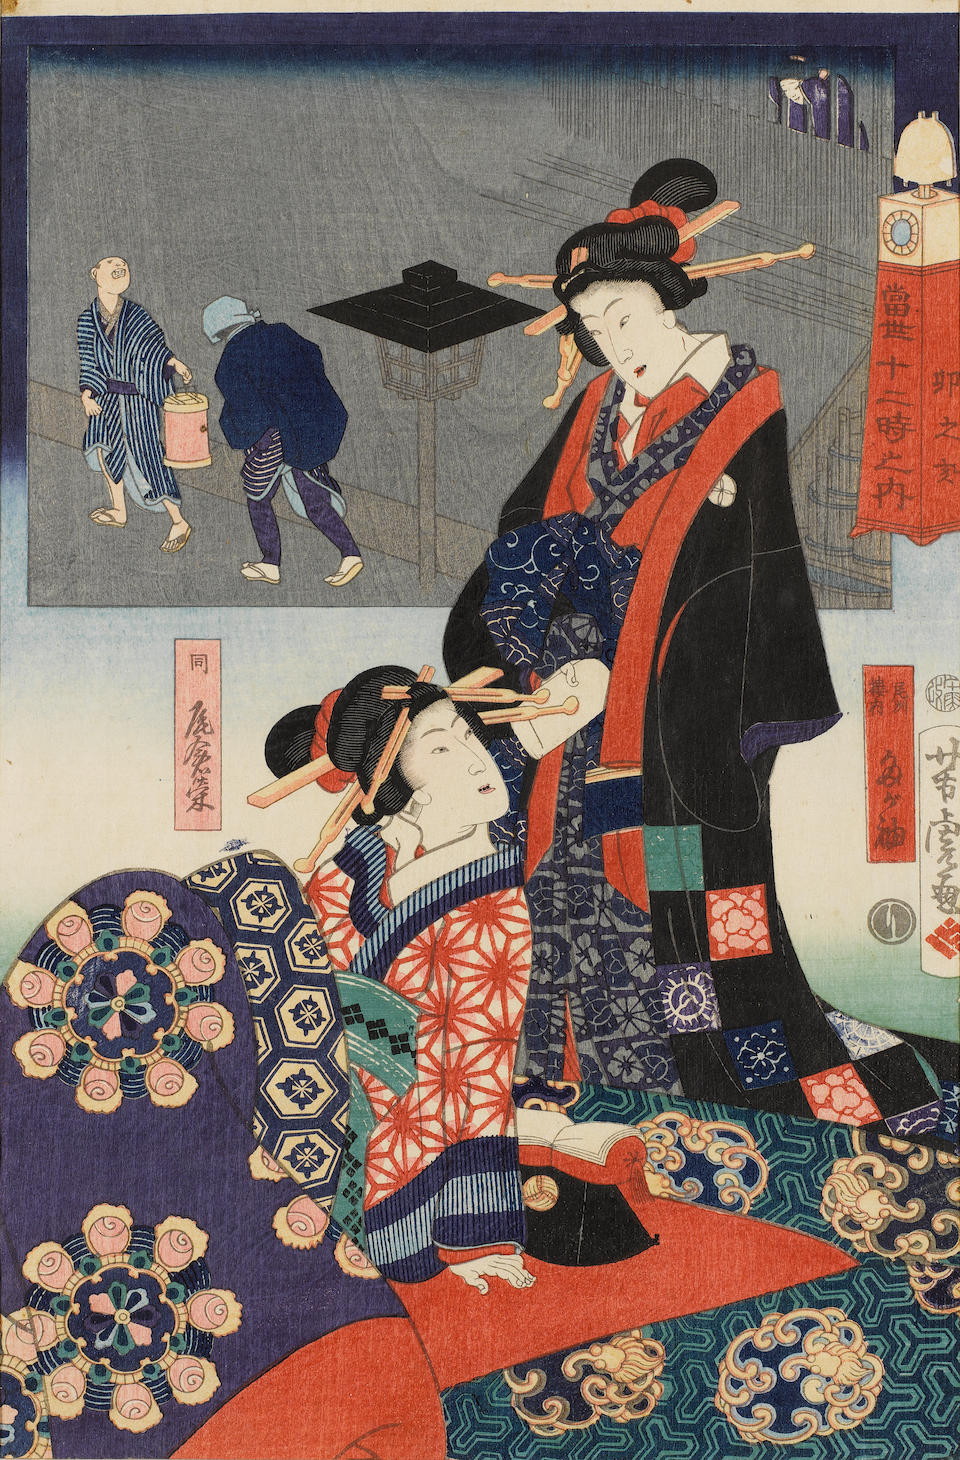 Utagawa Yoshitora (fl.ca.1850-1880) and others Late 19th century to early 20th century